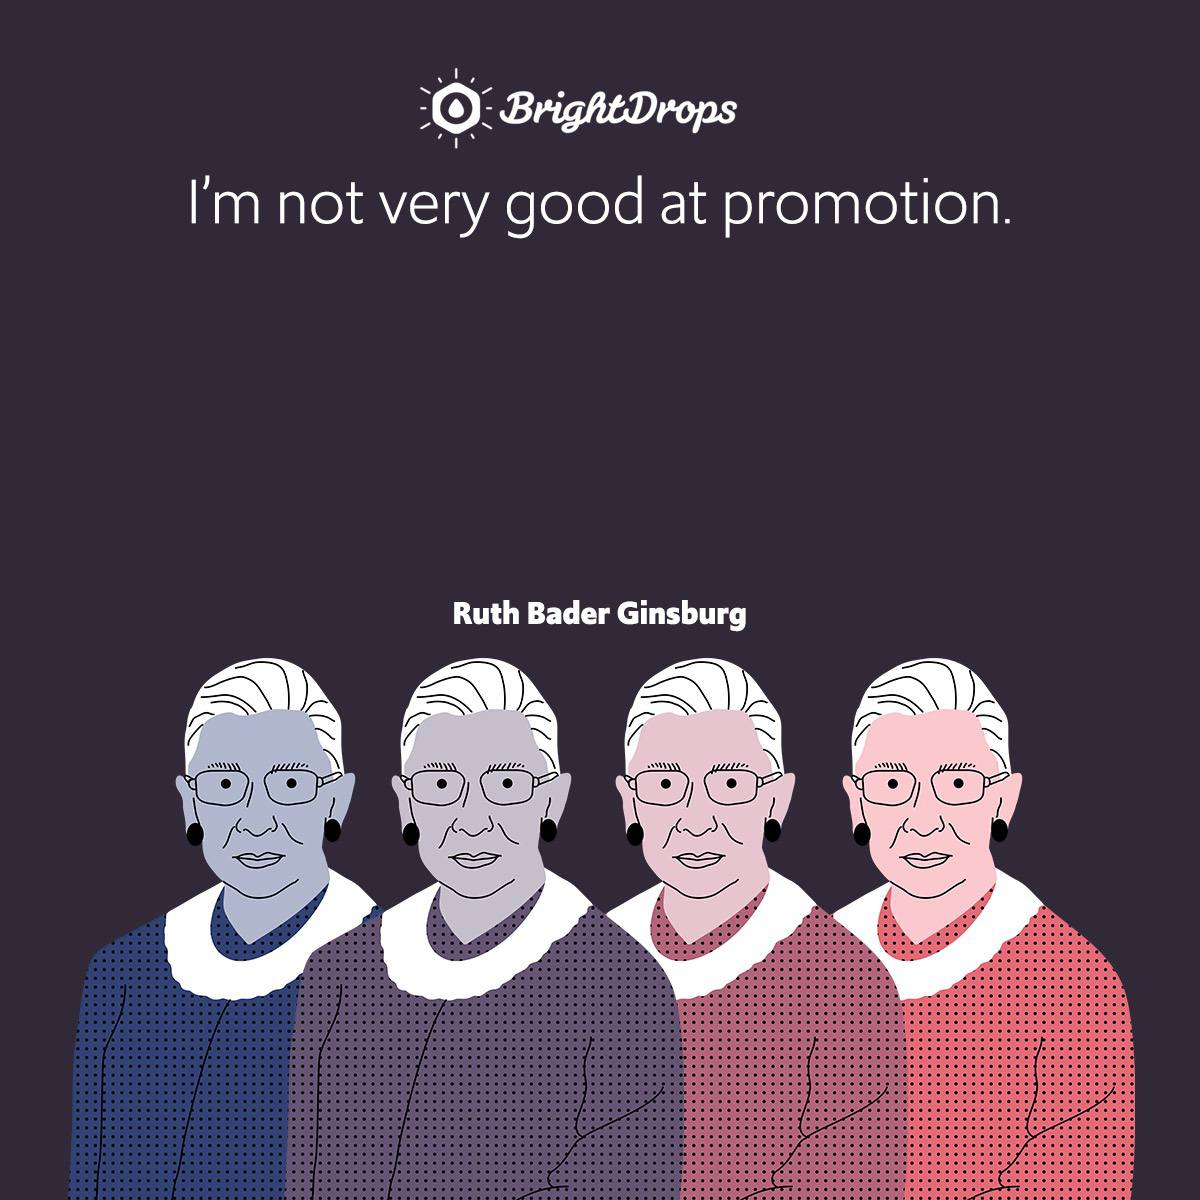 I'm not very good at promotion.